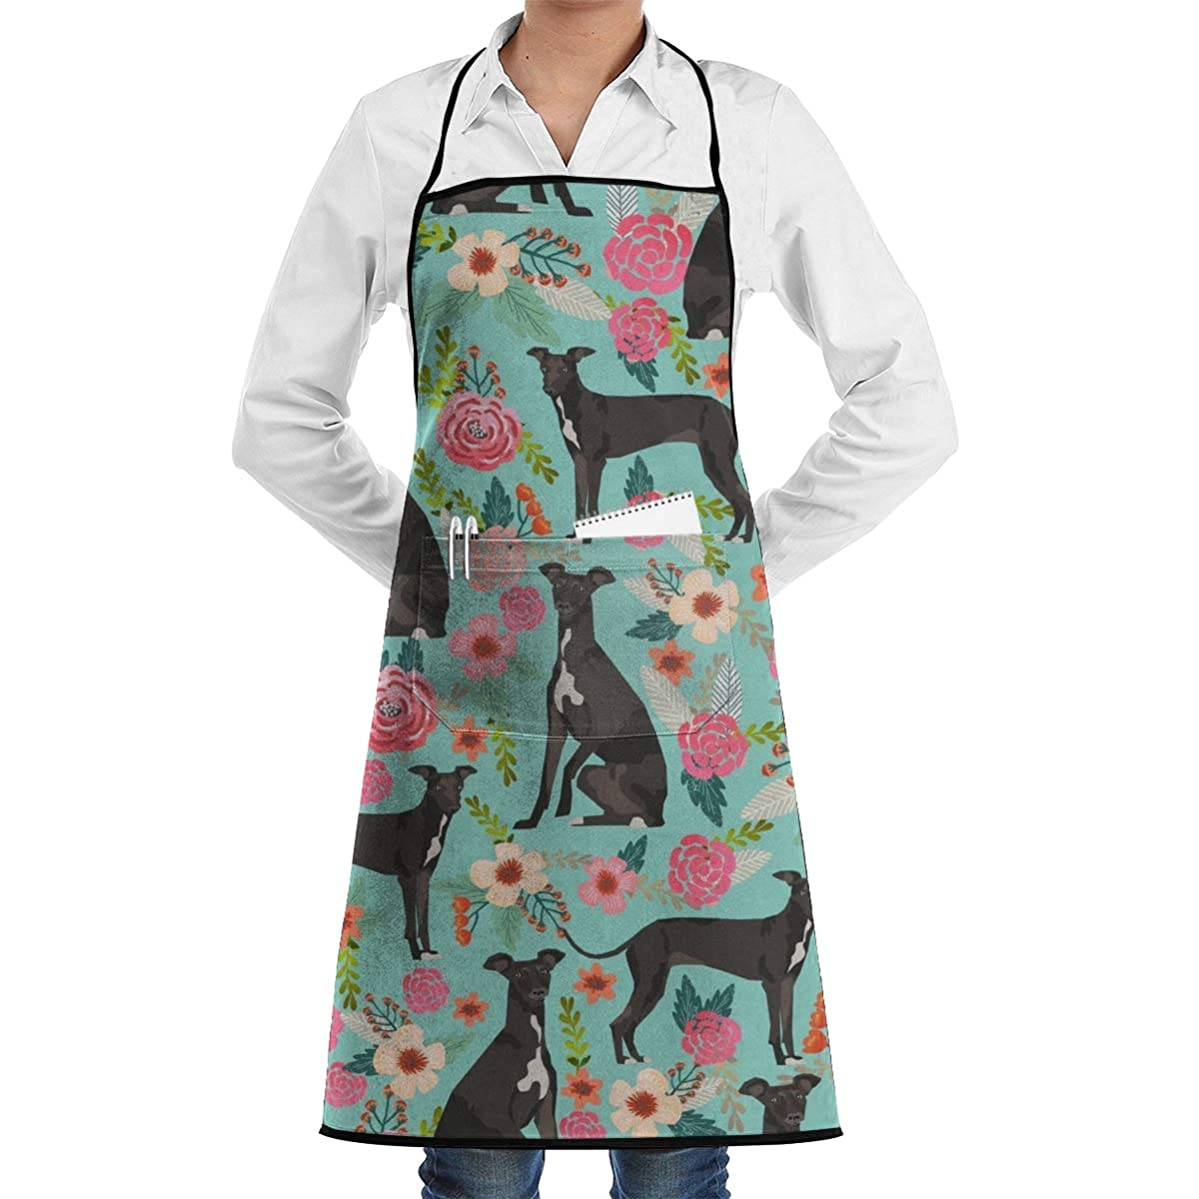 LOVE CORNER Men Women Professional Chef Bib Aprons Kitchen Apron Waterdrop Resistant Apron with Large Pocket for Cooking, Grill, Baking, BBQ, Holidays, (Italian Greyhound)